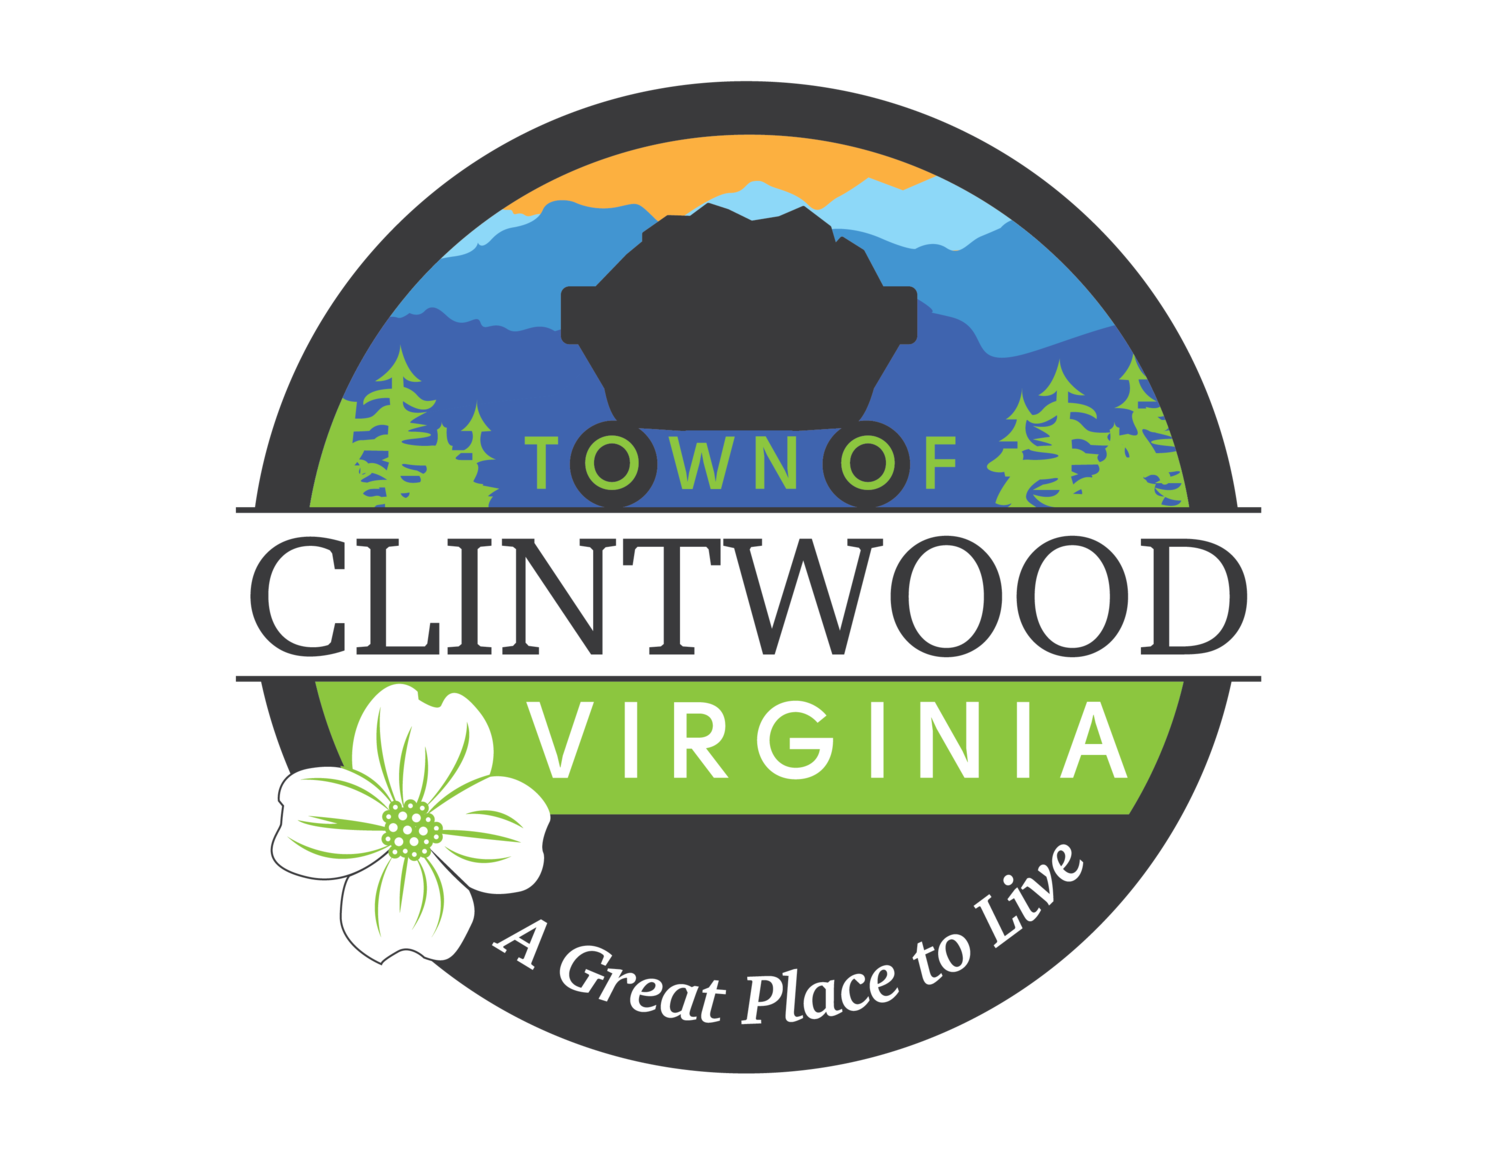 Town of Clintwood